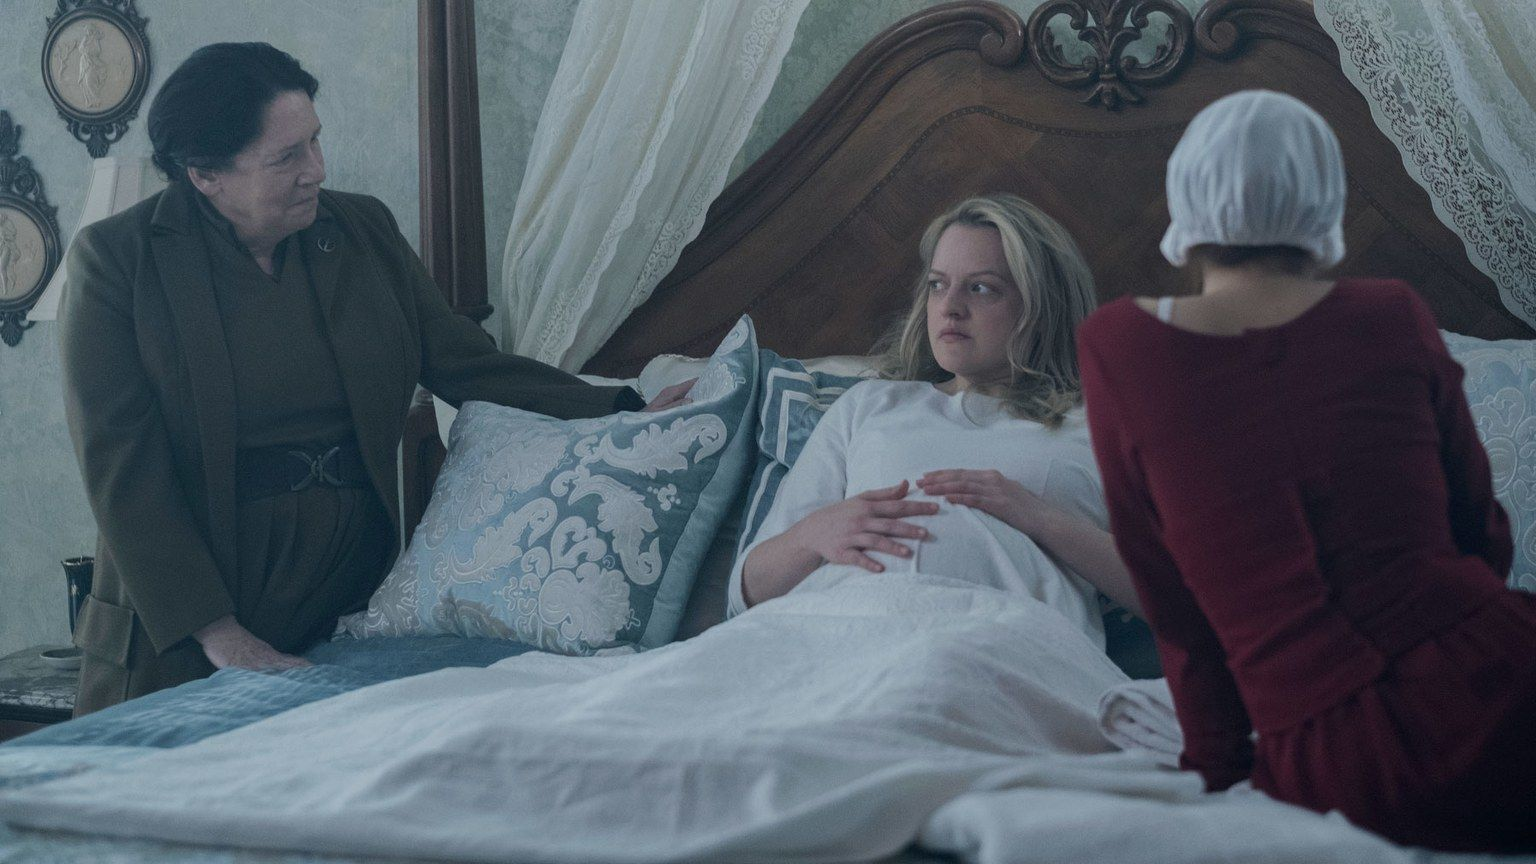 The Handmaid's Tale Writer Breaks Down the Series's Most